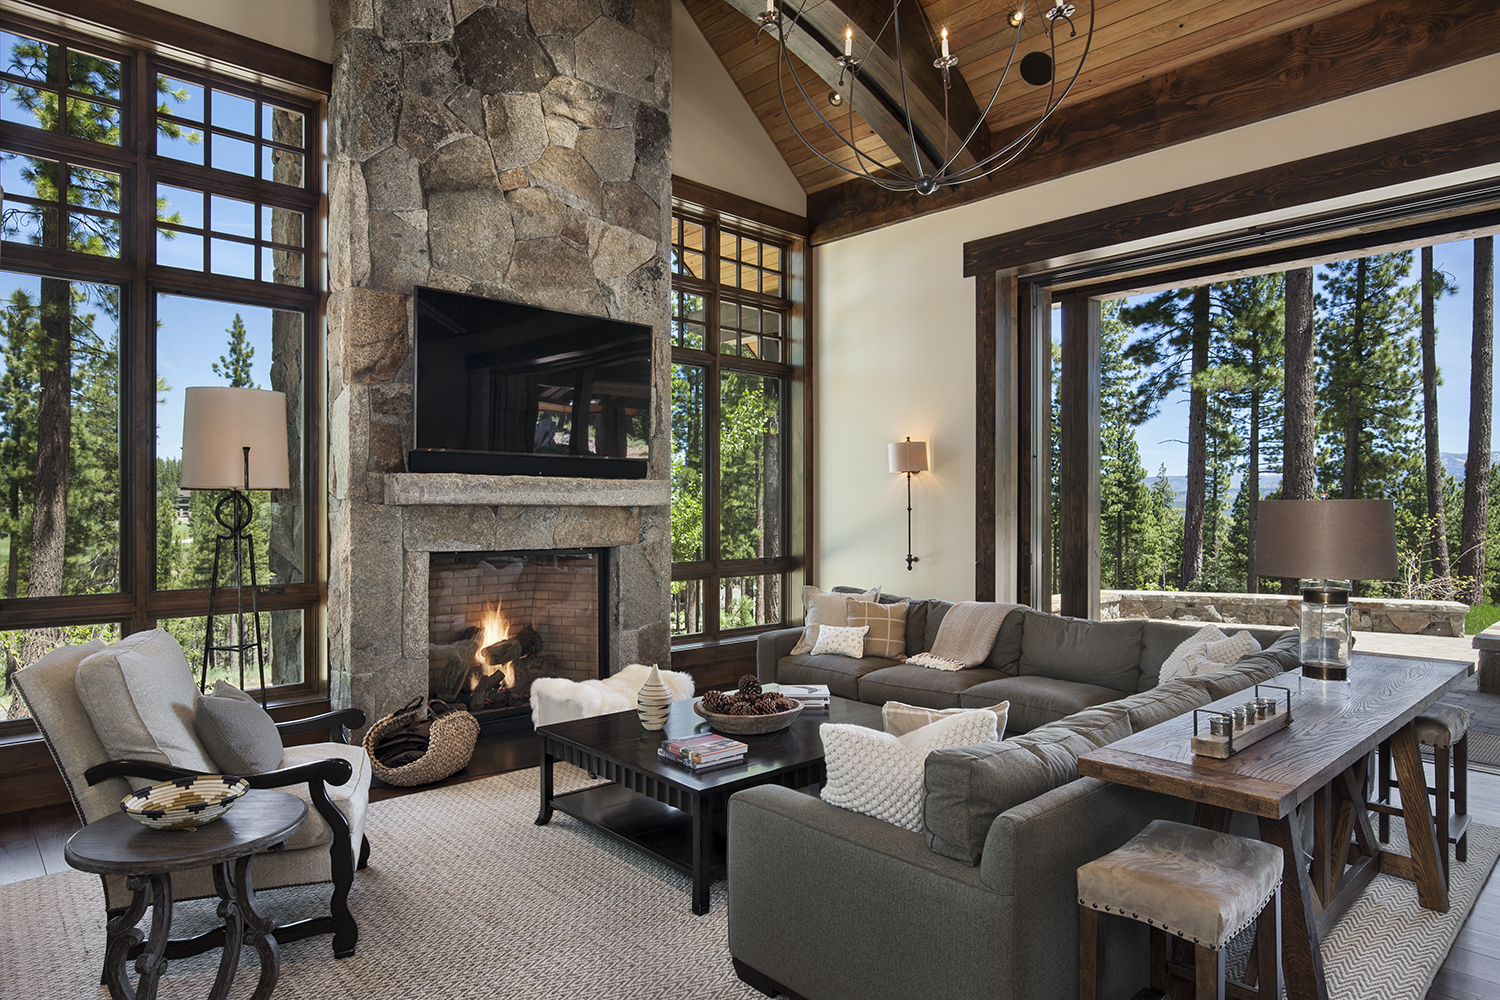 Lot 640_Living Room_Fireplace_Masonry_Weilands.jpg